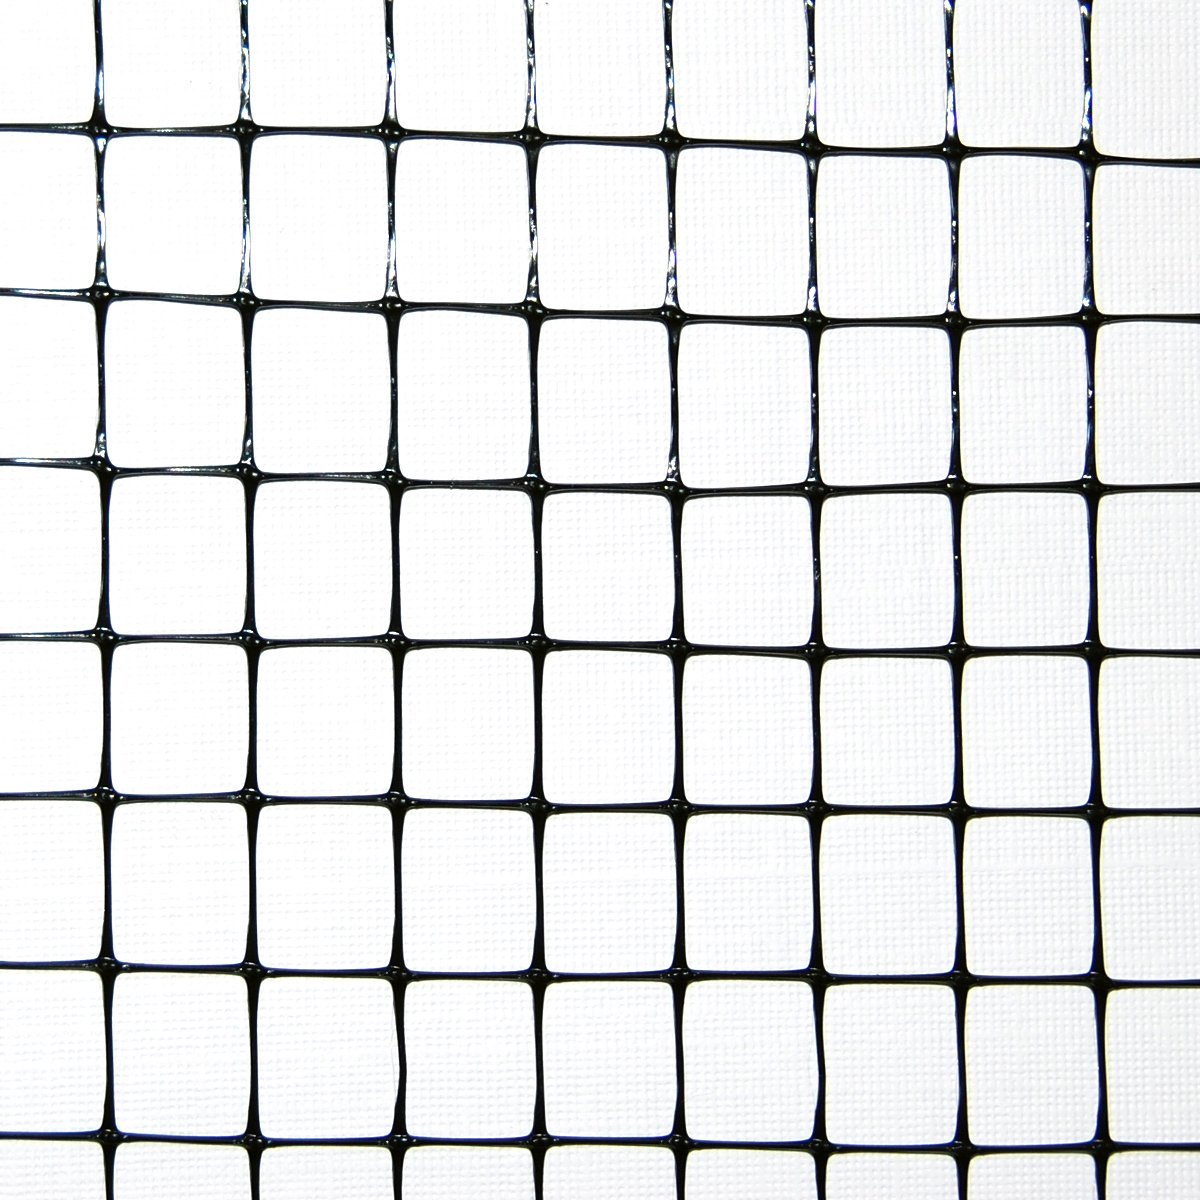 Industrial Netting OV1581-168x100 Heavy Duty Polypropylene Bird Garden Net, 1/2'' Mesh, 100' Length x 14' Width, Black by Industrial Netting